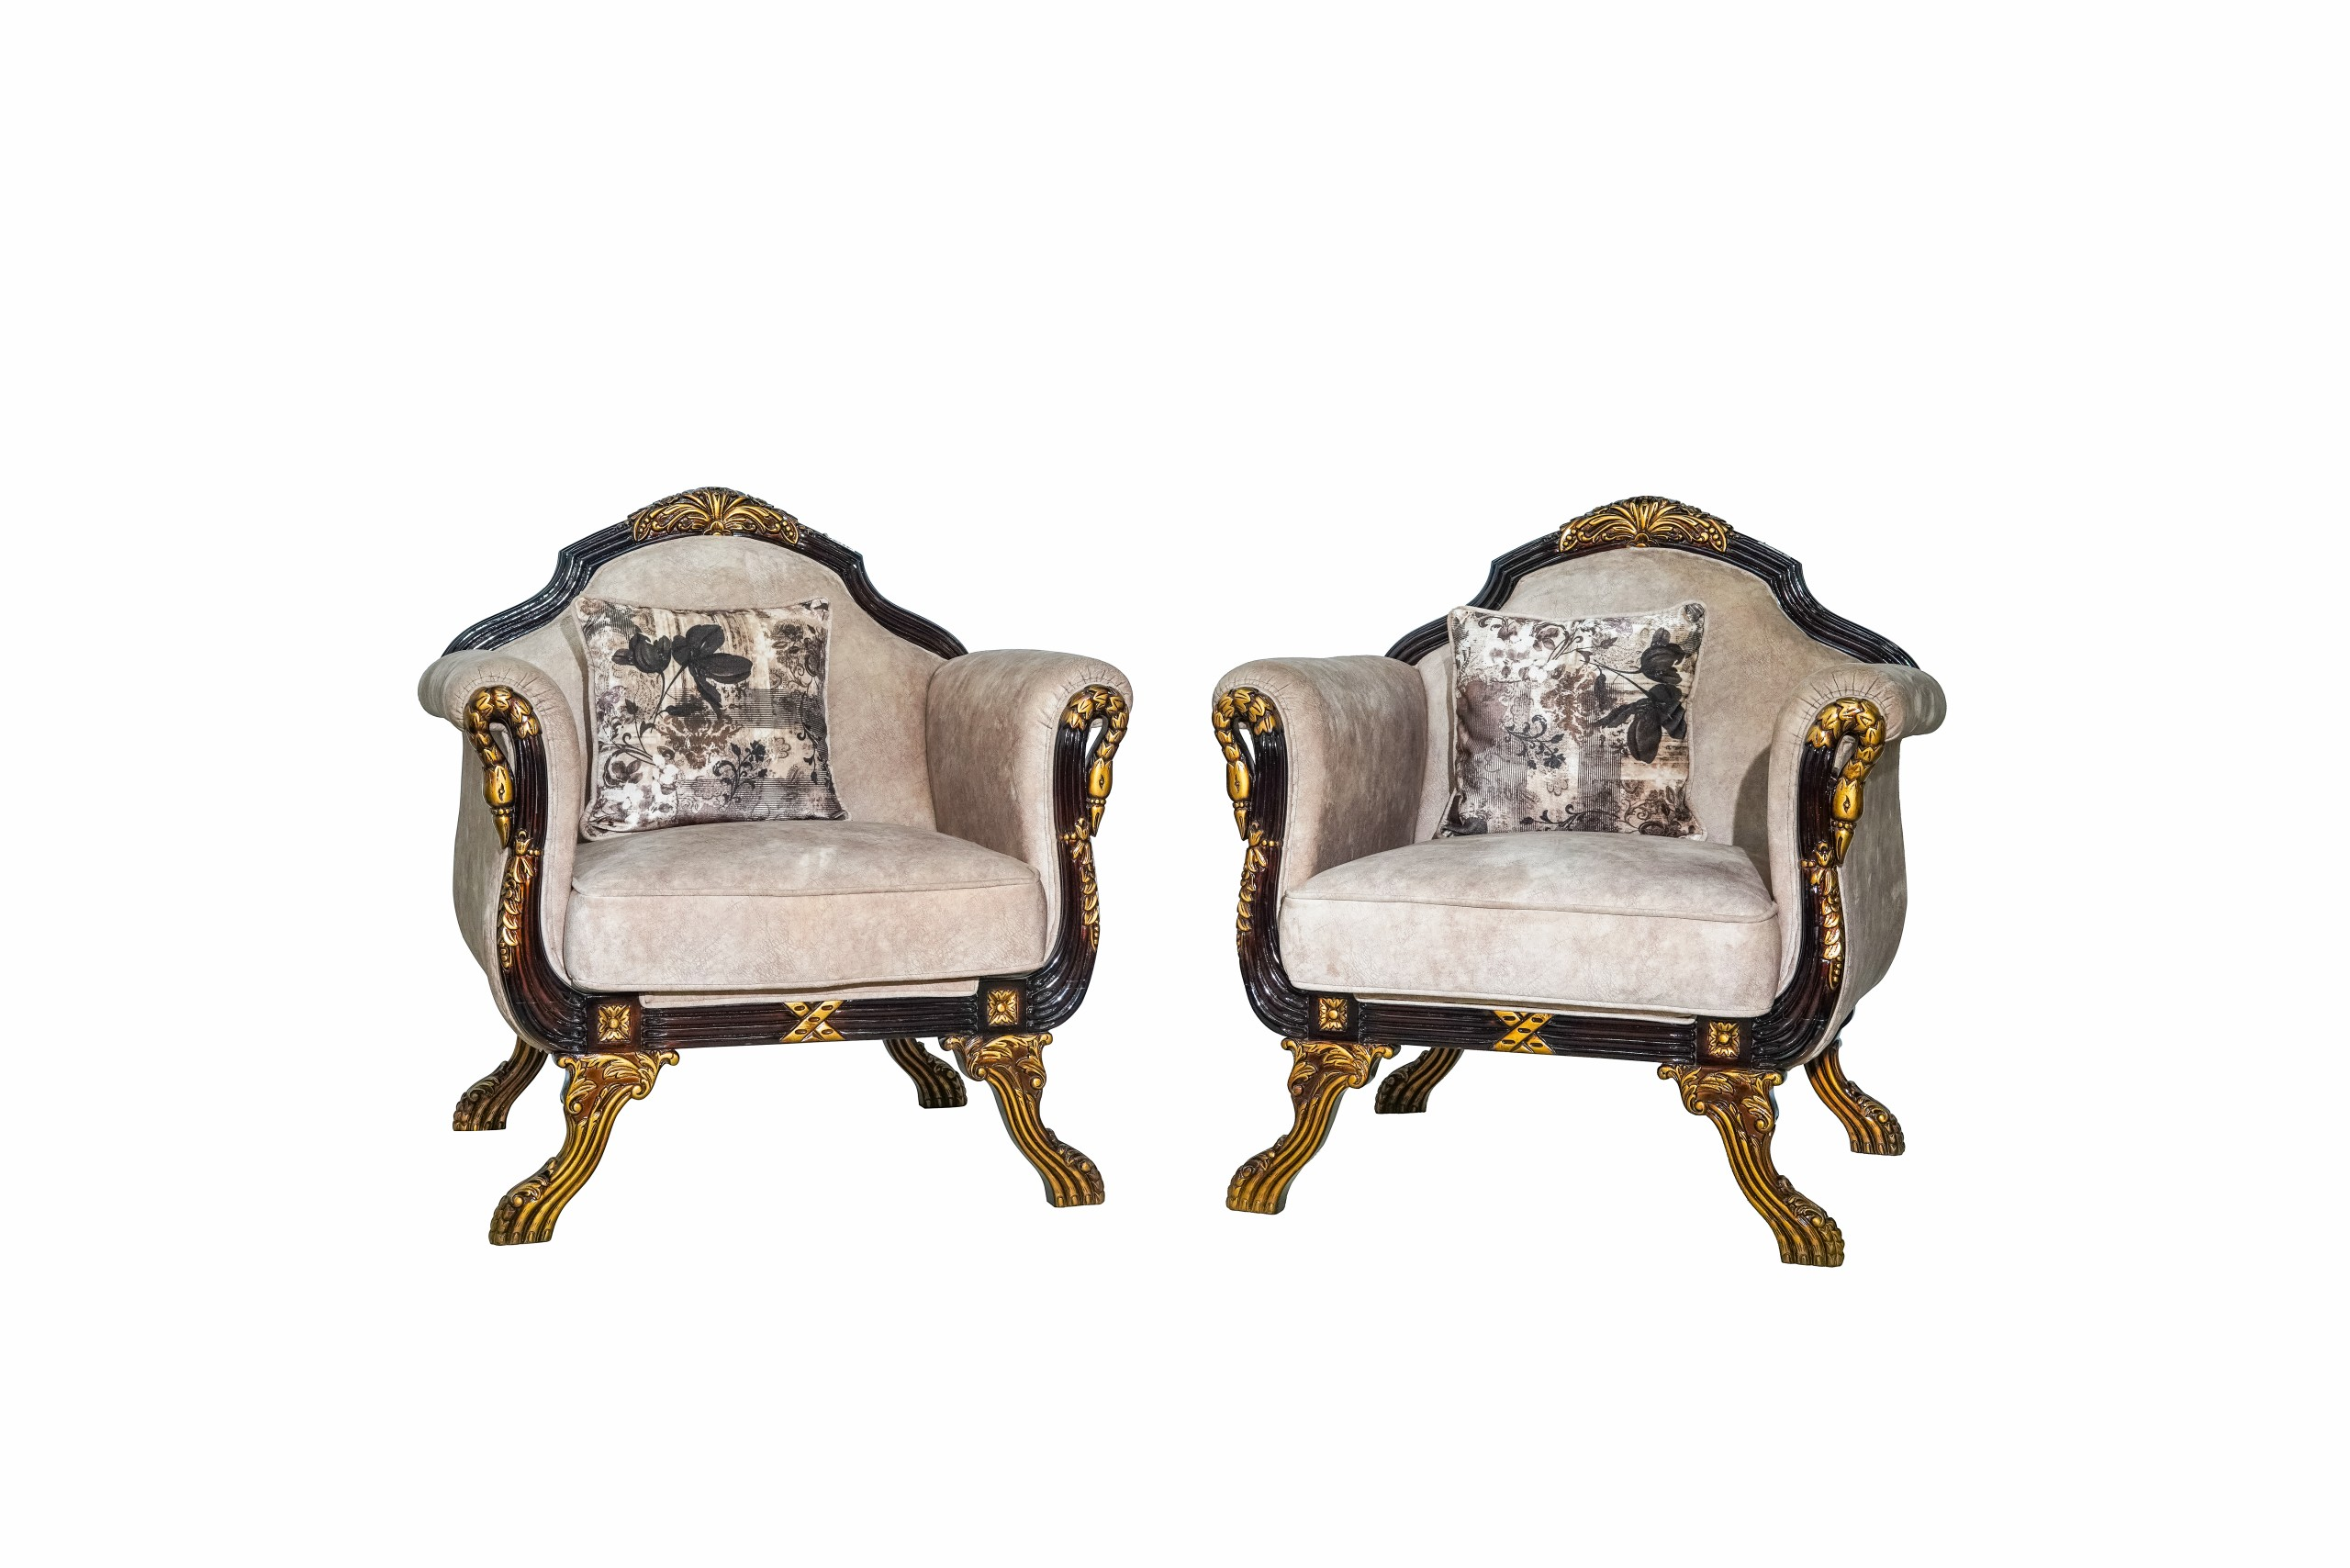 A Pair of Two Luxury Chairs